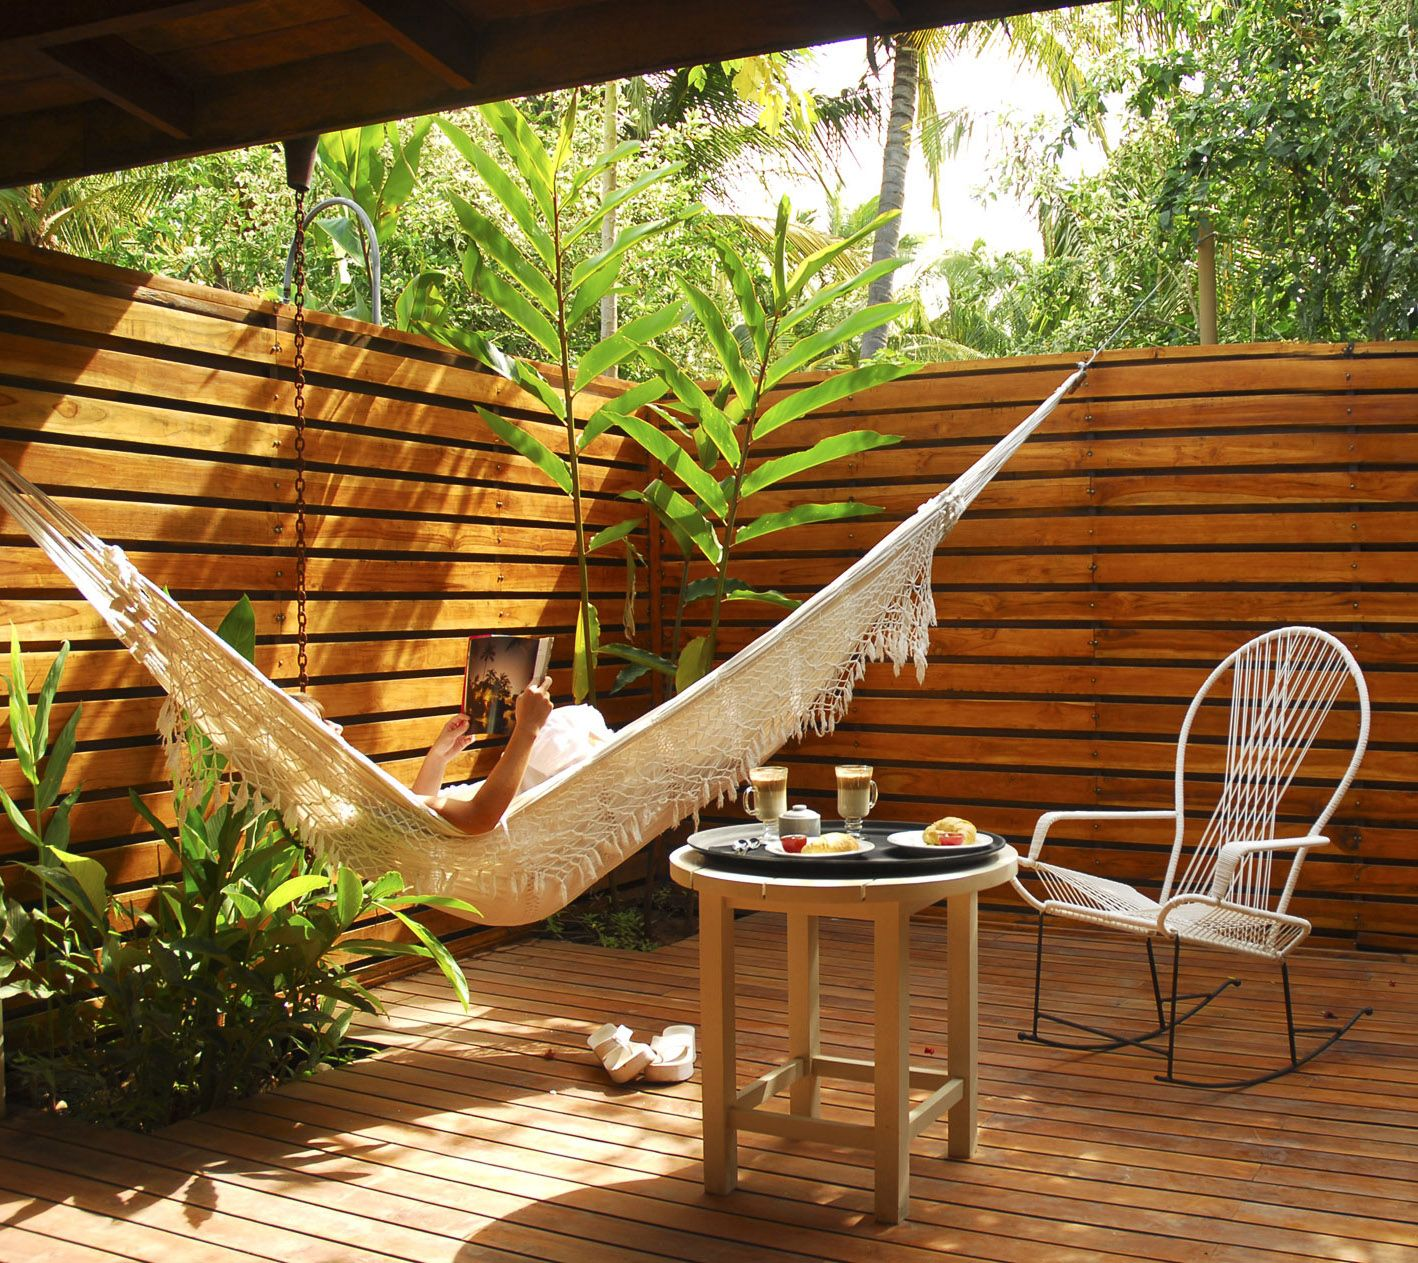 Hanging Chair Rona Cane Bistro Chairs Hammock Wood Patio The Harmony Hotel Costa Rica Outside